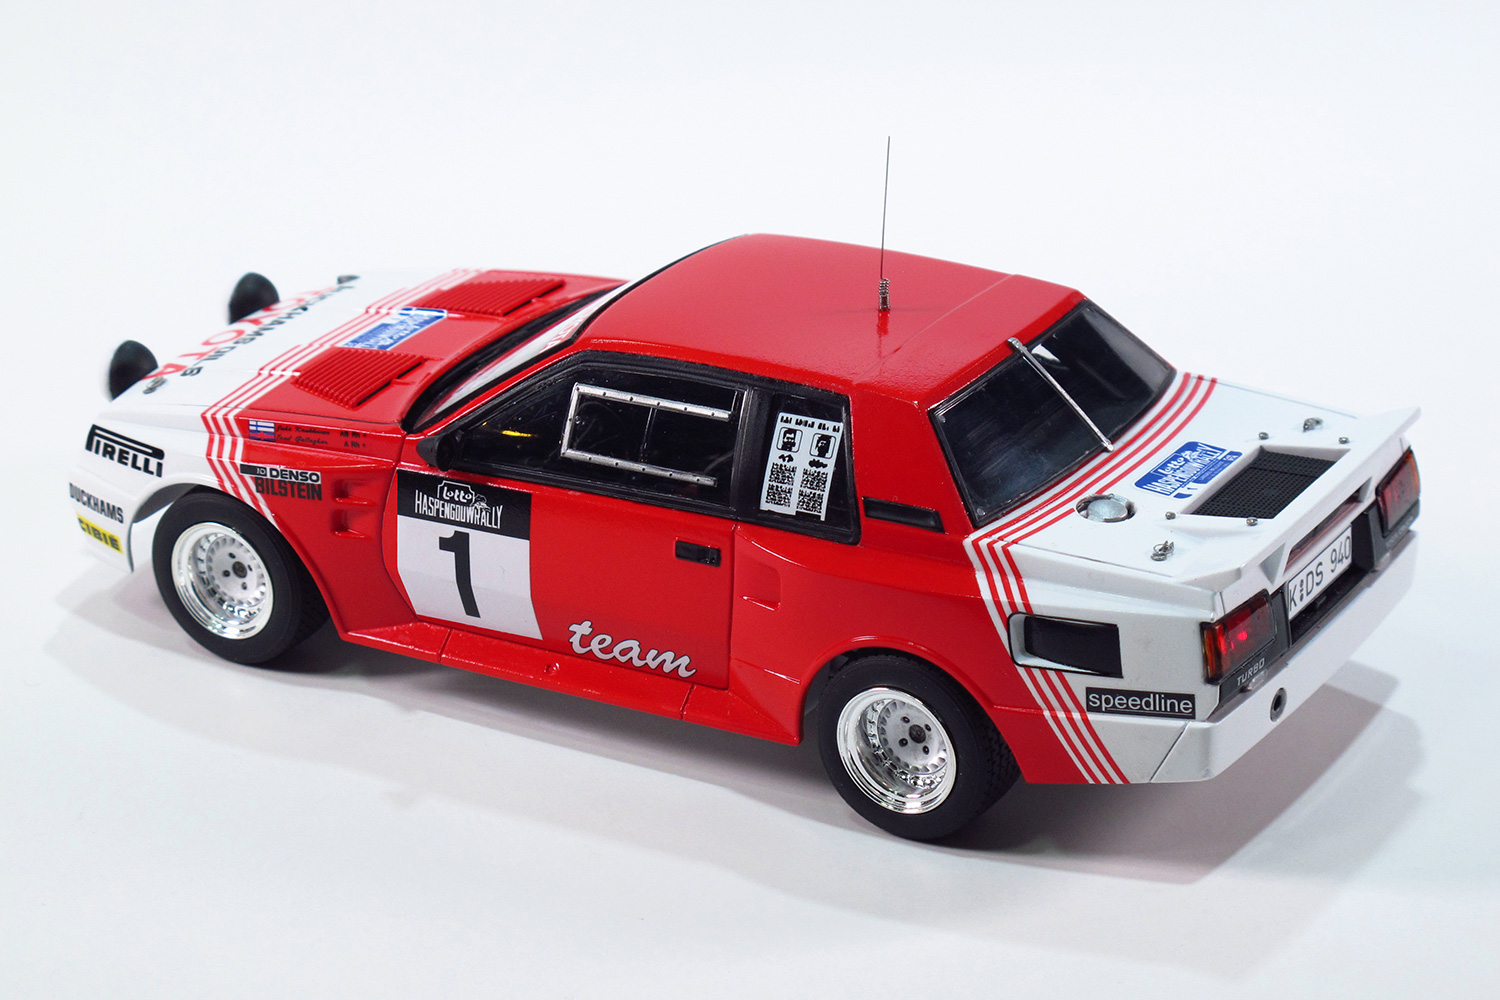 1/24 Toyota Celica TA64 '85 Haspen gow rally specification-Scheduled